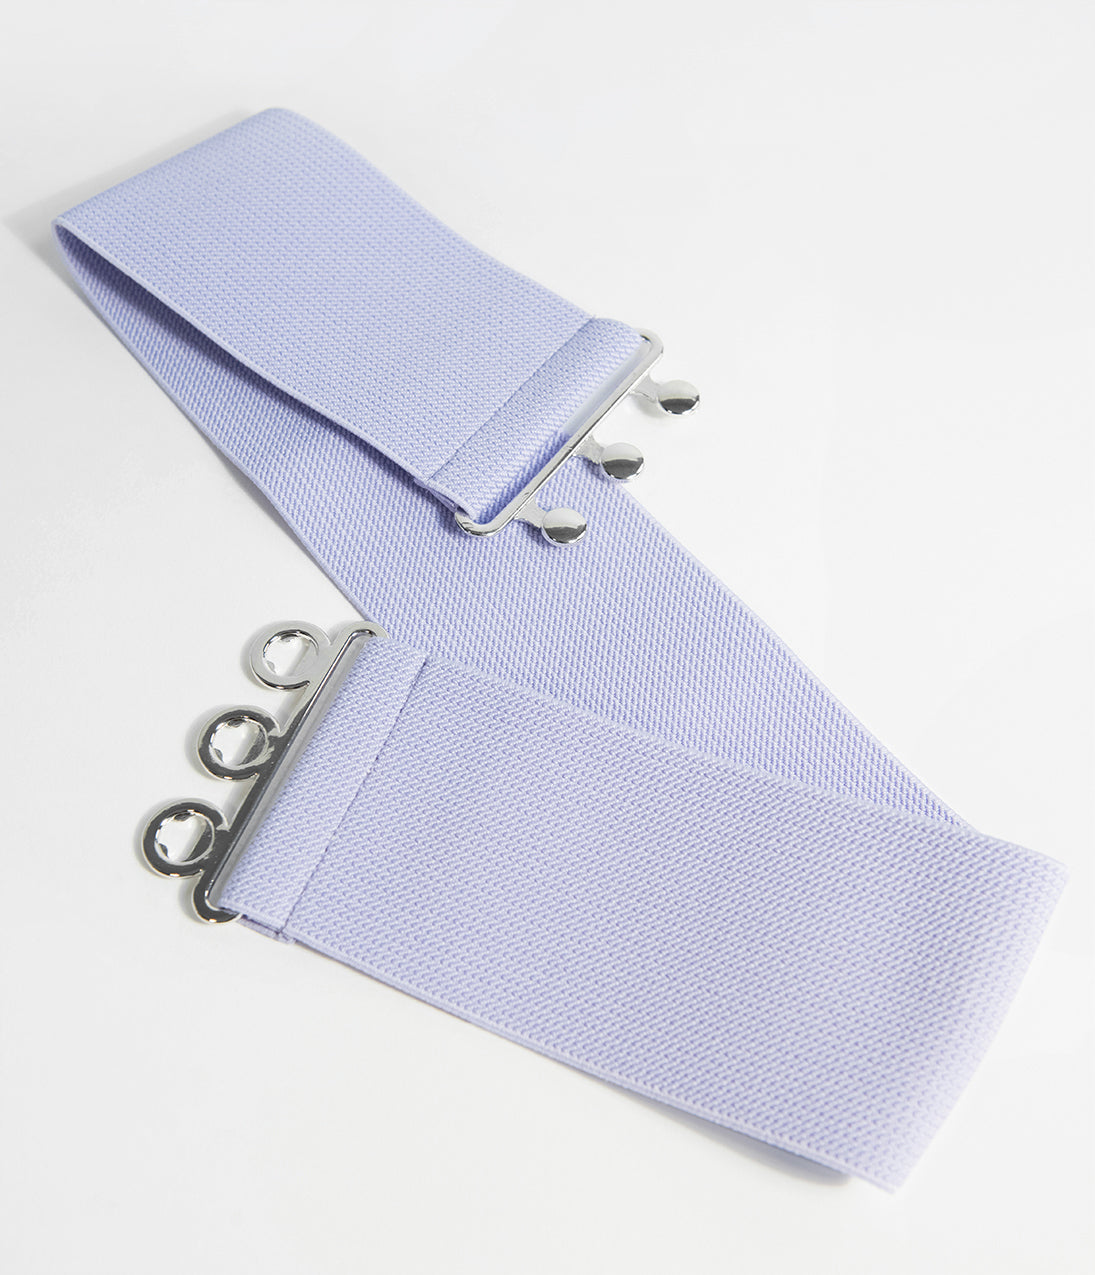 Vintage Wide Belts, Cinch Belts 40s, 50s Belts Hell Bunny 1950S Retro Style Lavender Purple Cinch Belt $14.00 AT vintagedancer.com